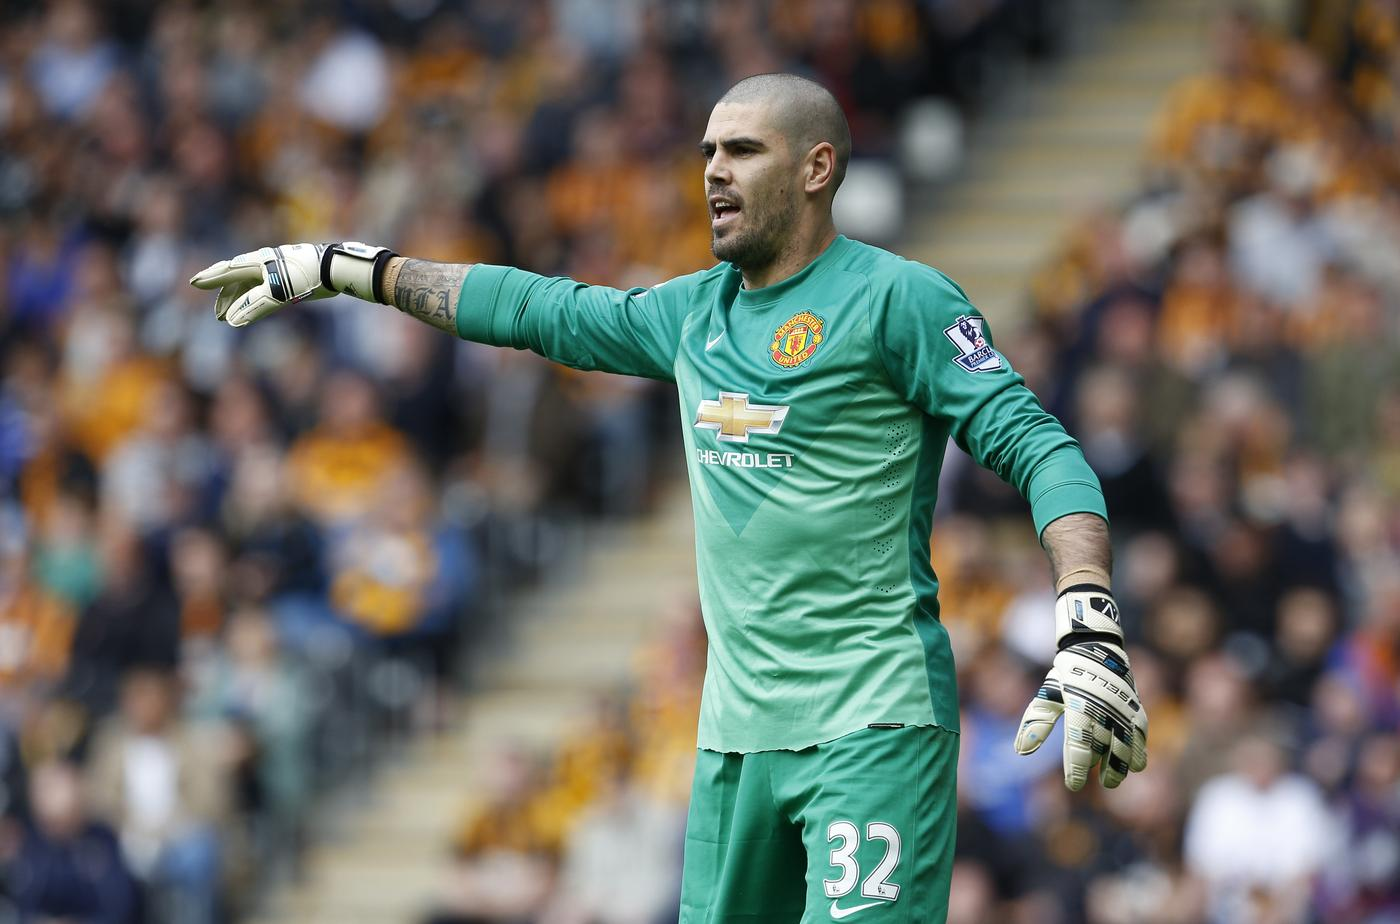 Victor Valdes will seal transfer away from Manchester United in January, says Ander Herrera